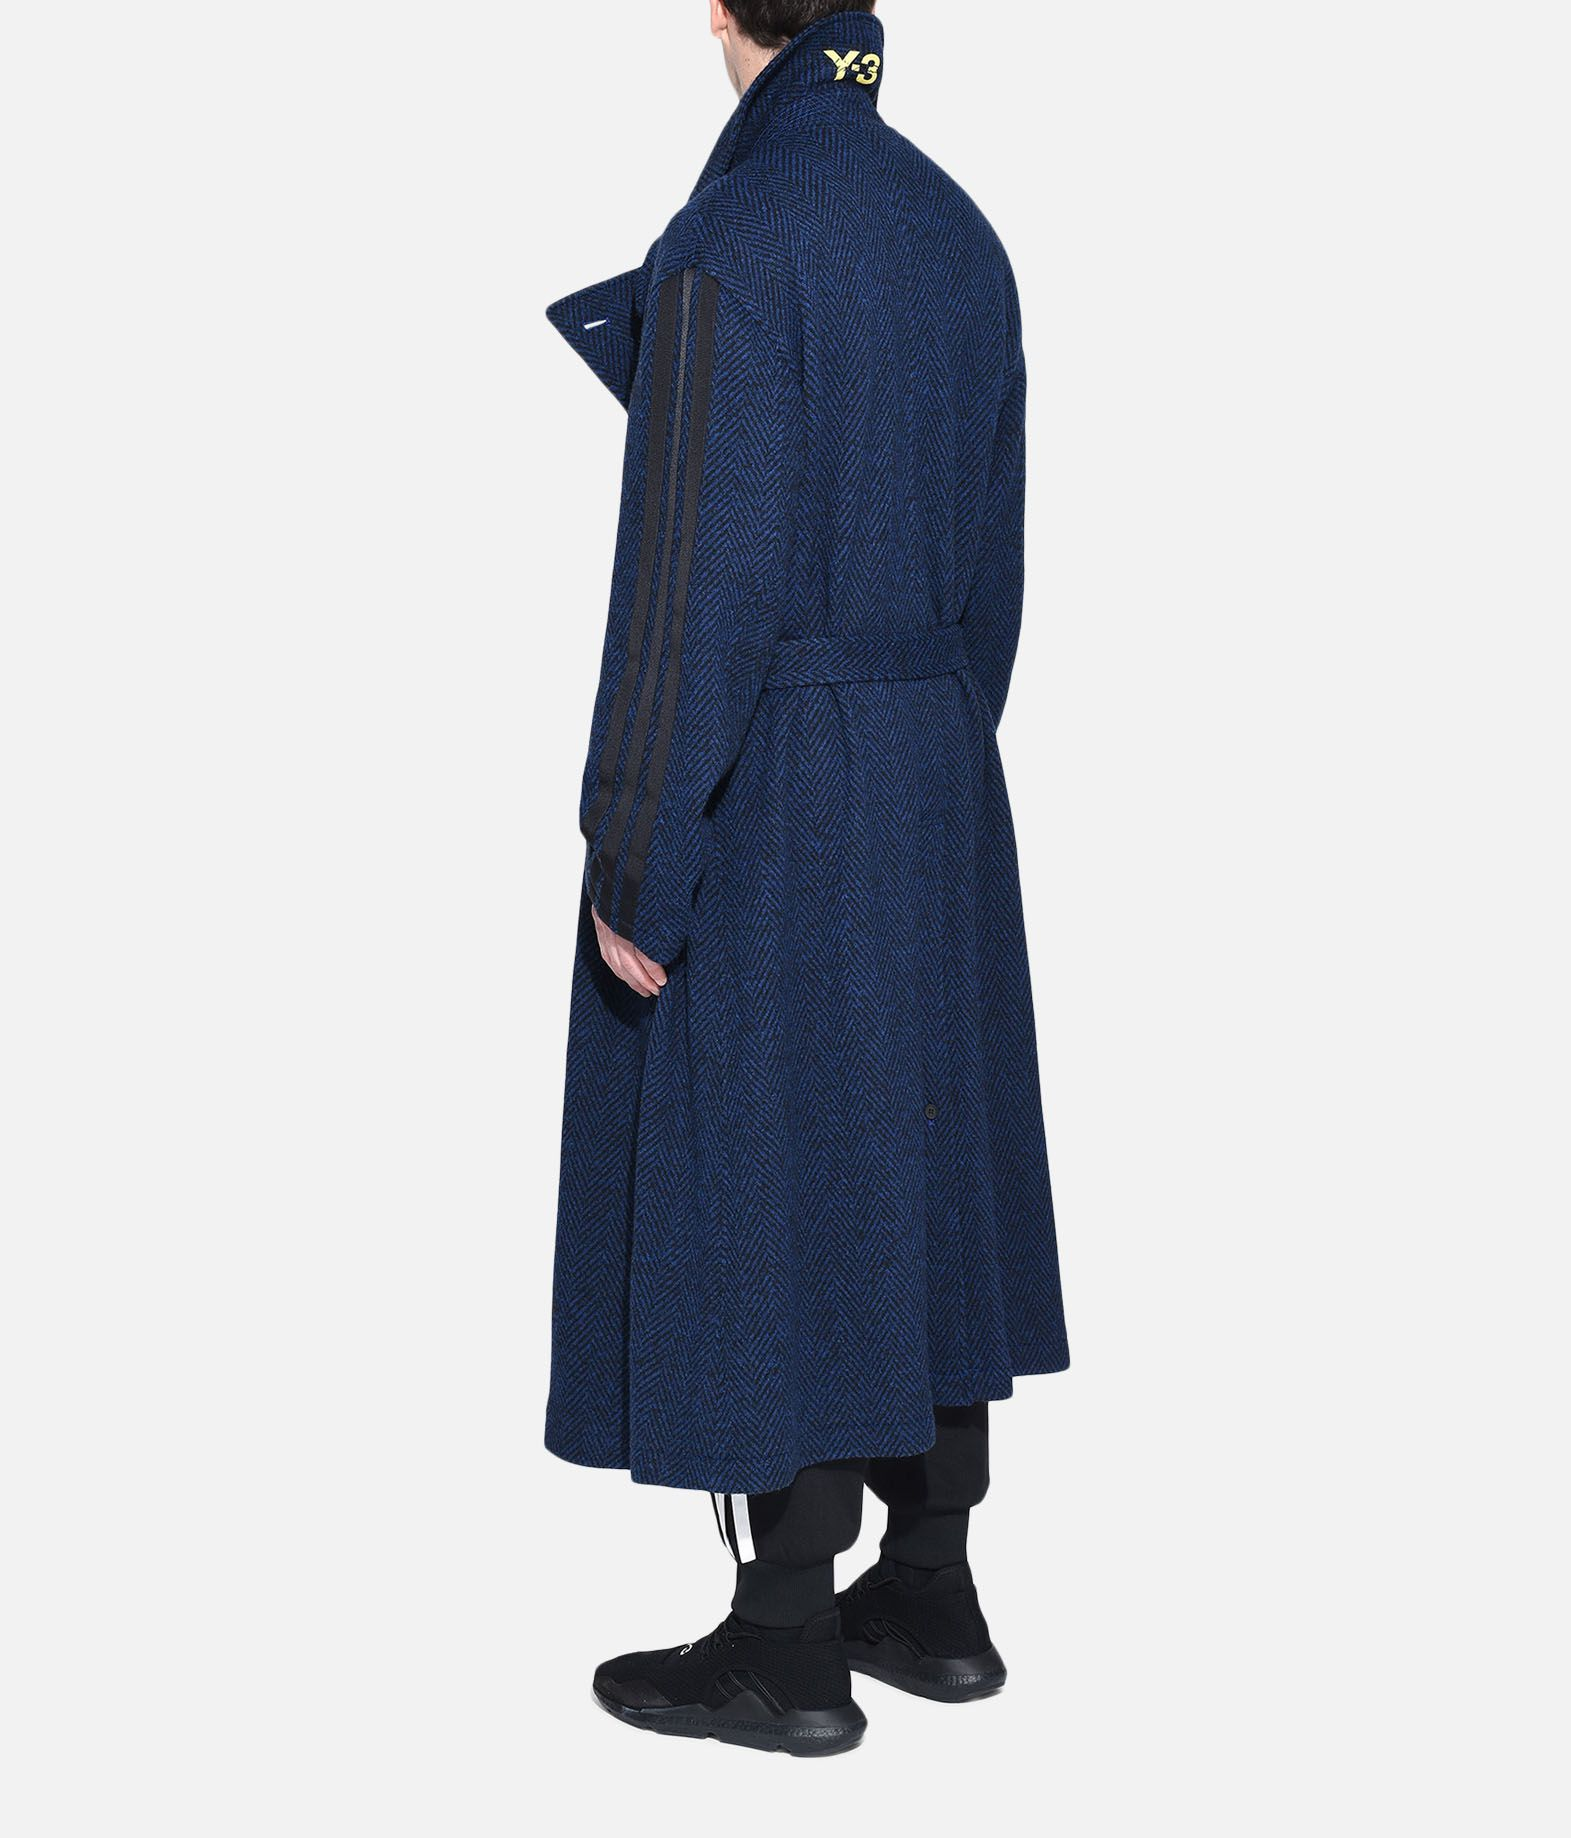 Y-3 Y-3 Tailored Wool Coat Coat Man e